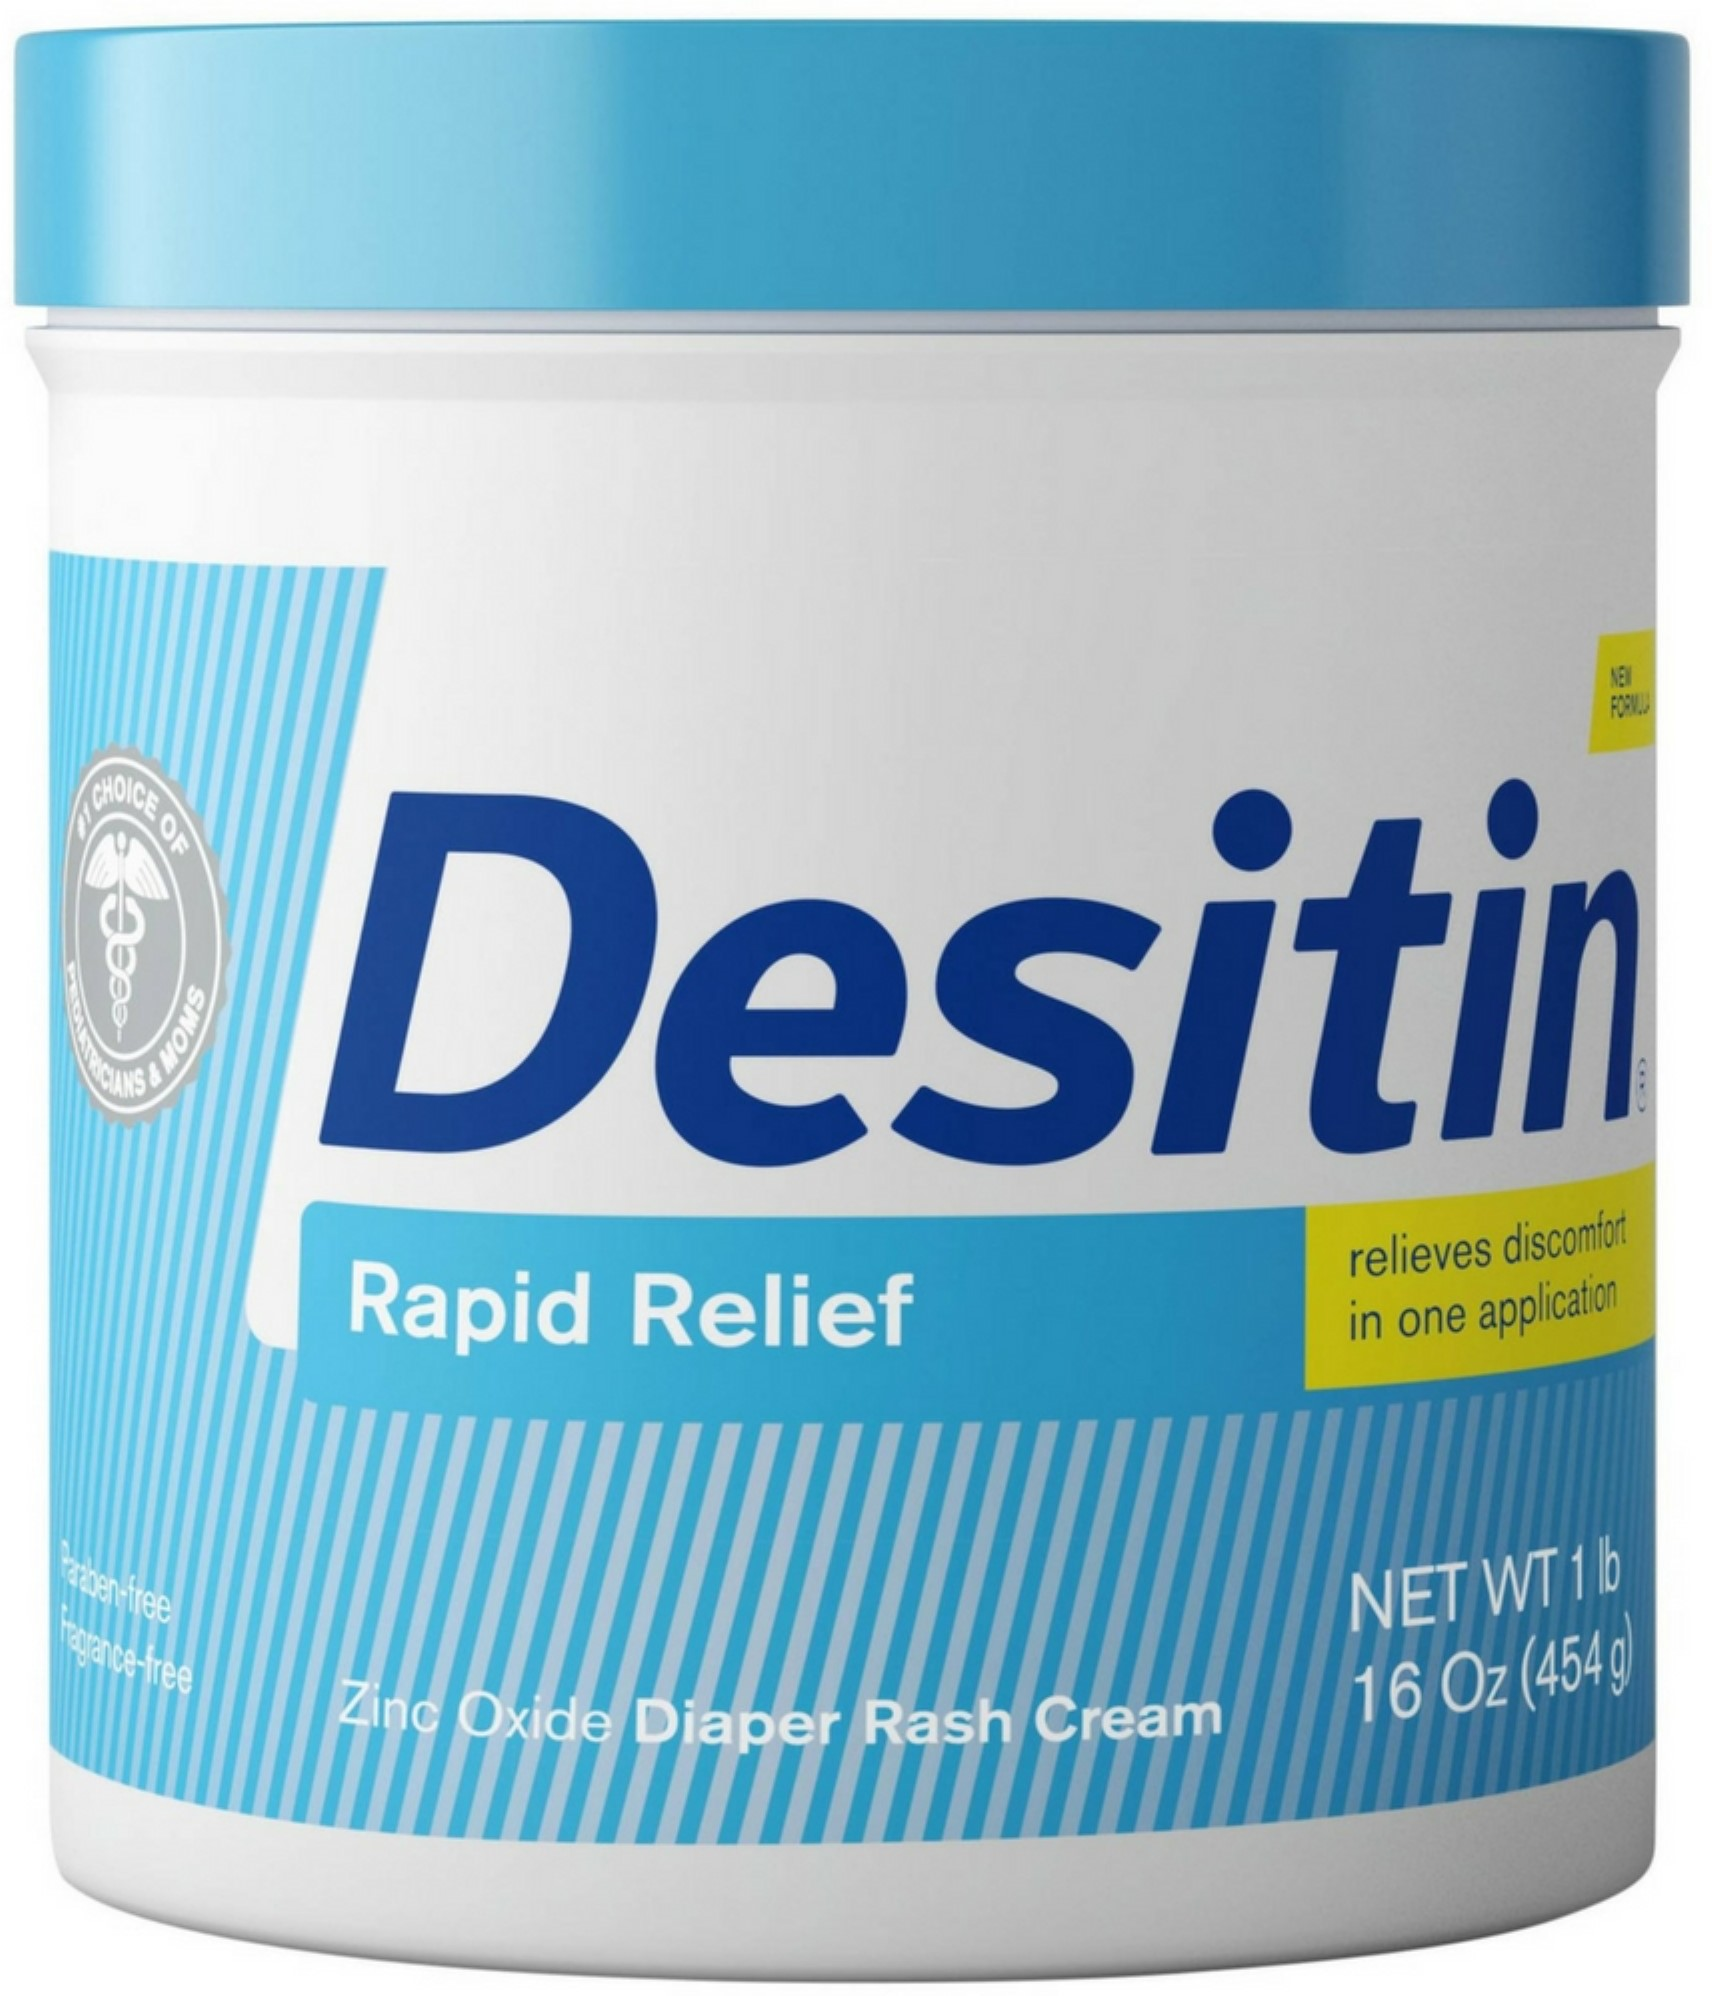 2 Pack DESITIN Rapid Relief Diaper Rash Cream 16 oz by Desitin